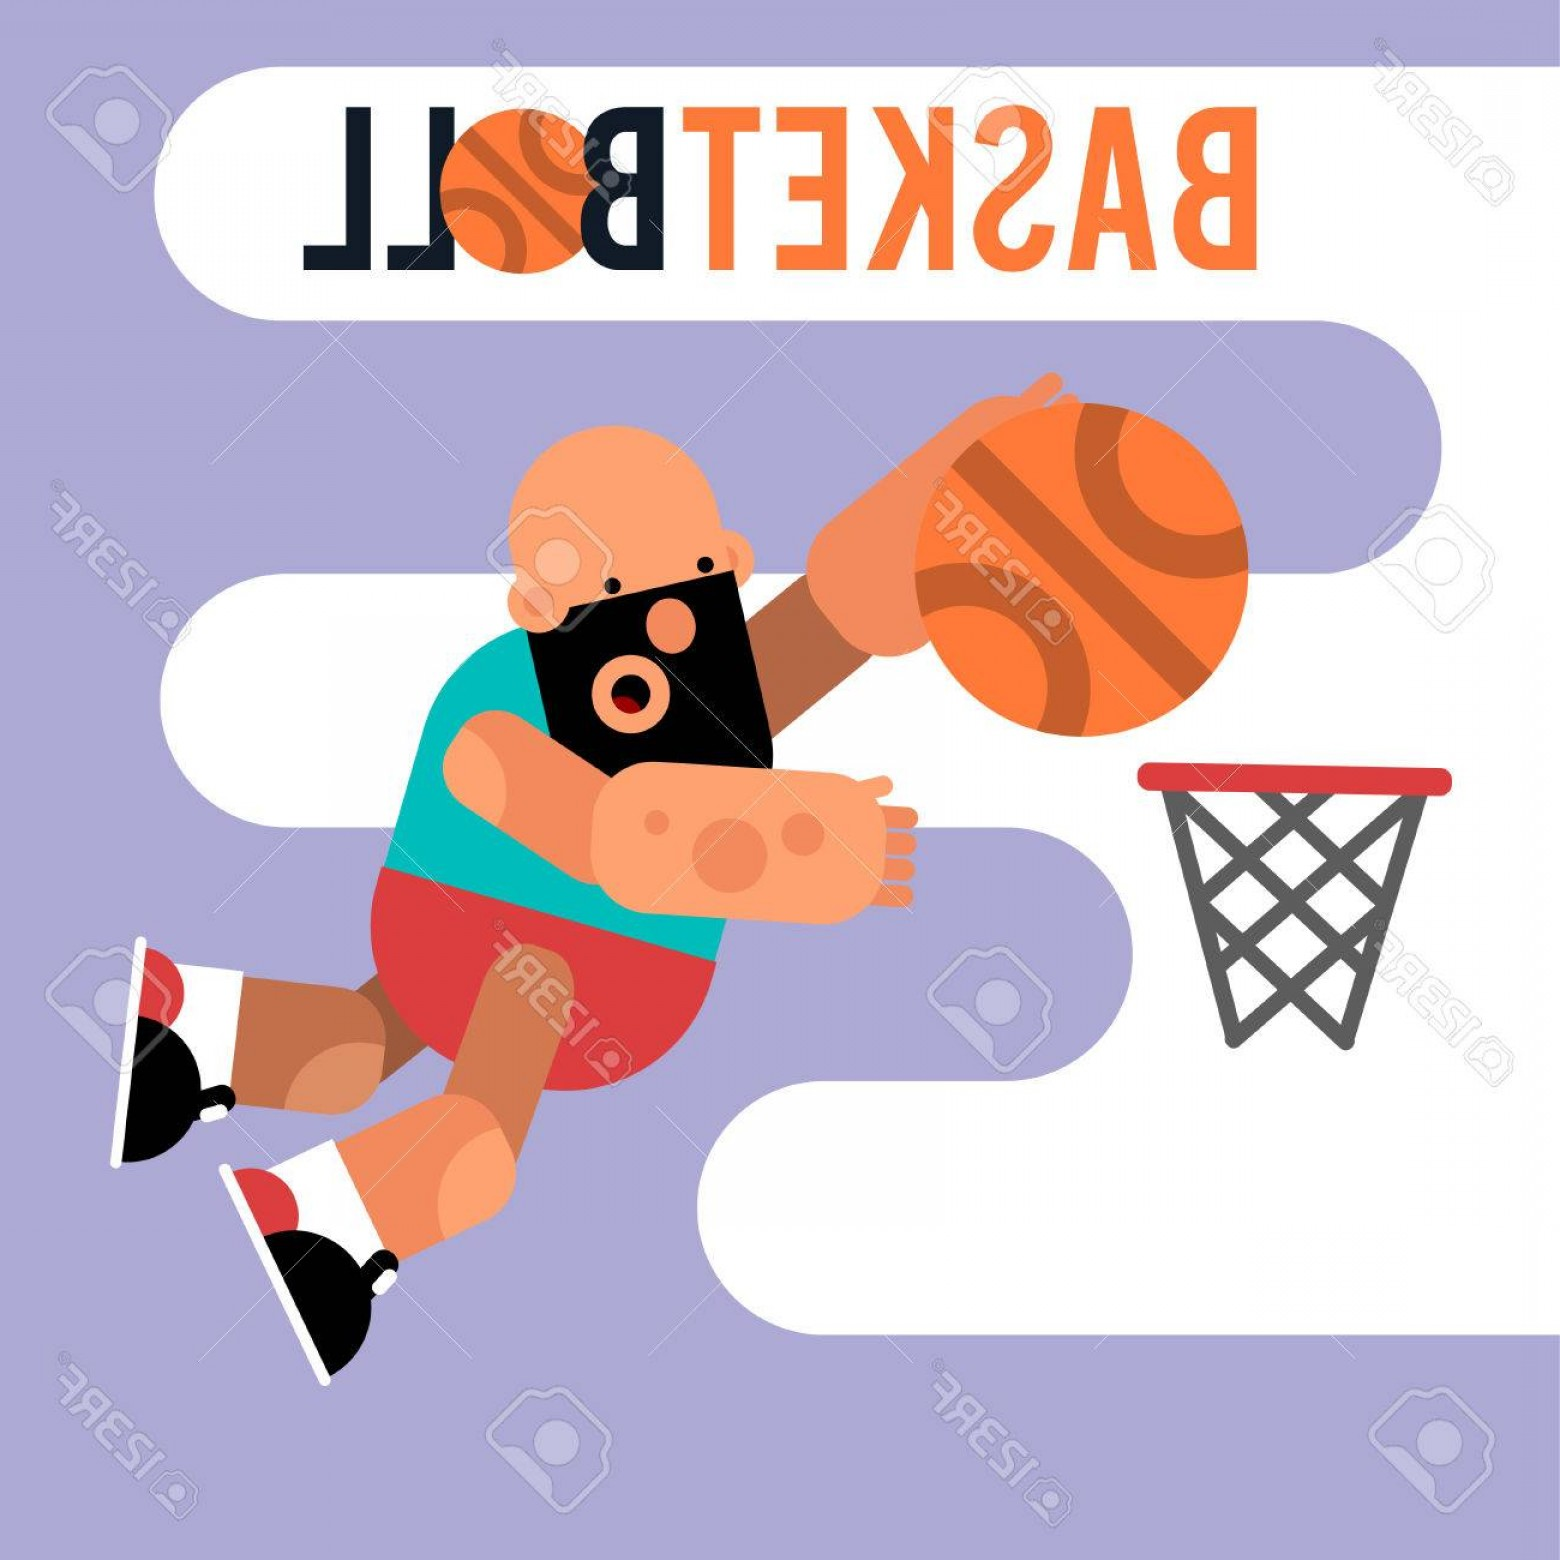 Motion Basketball Vector: Photostock Vector Cartoon Basketball Player Jumping With A Ball Vector Illustration Of Game Character For Motion Desig